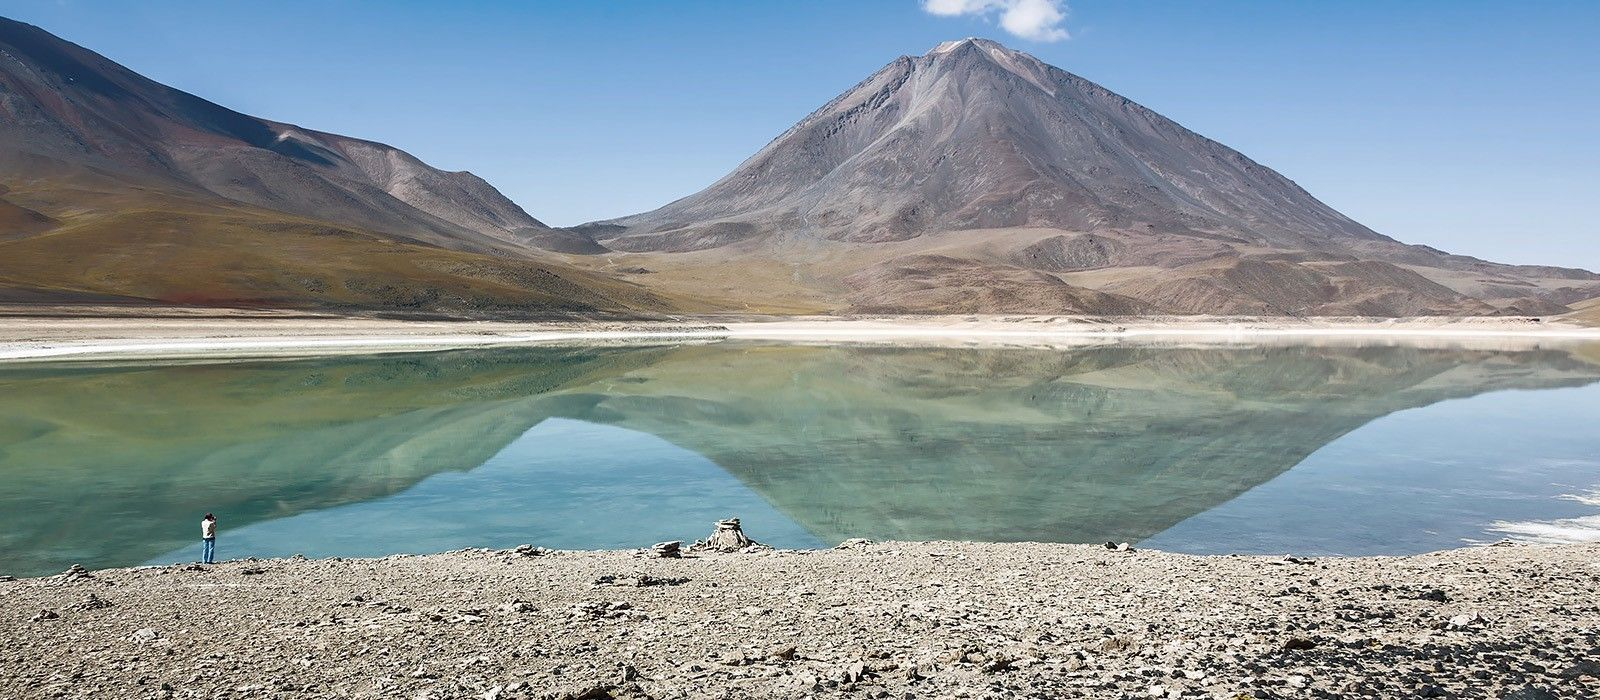 Bolivia: Landscapes & Culture Tour Trip 5